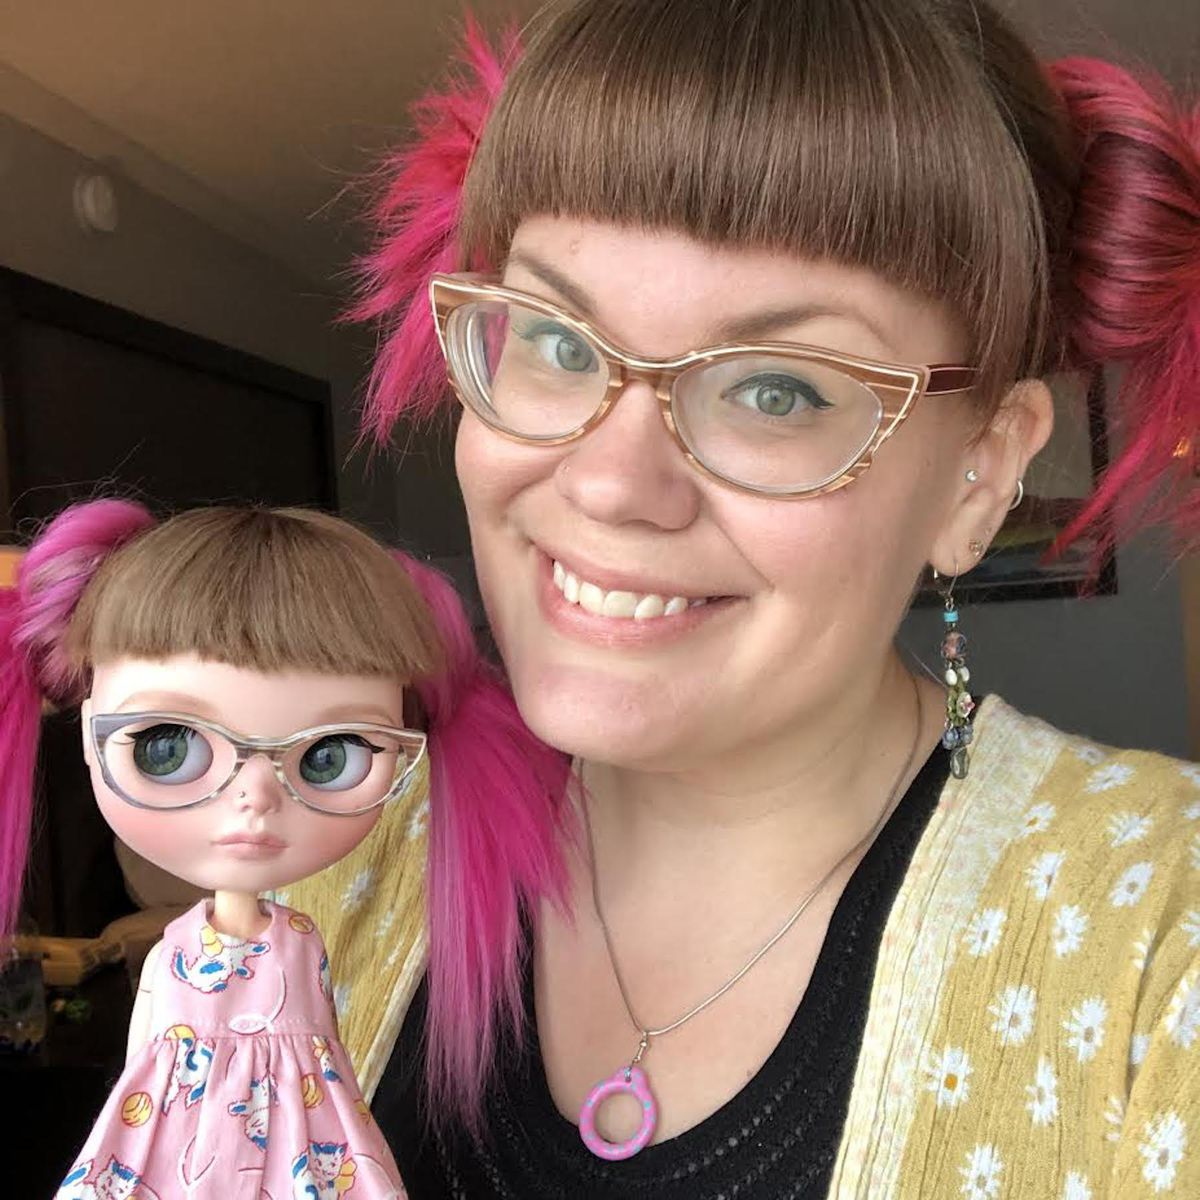 Sarah Thompson with the Blythe doll she customized to win a Mini-Me contest last year at a Minneapolis convention.